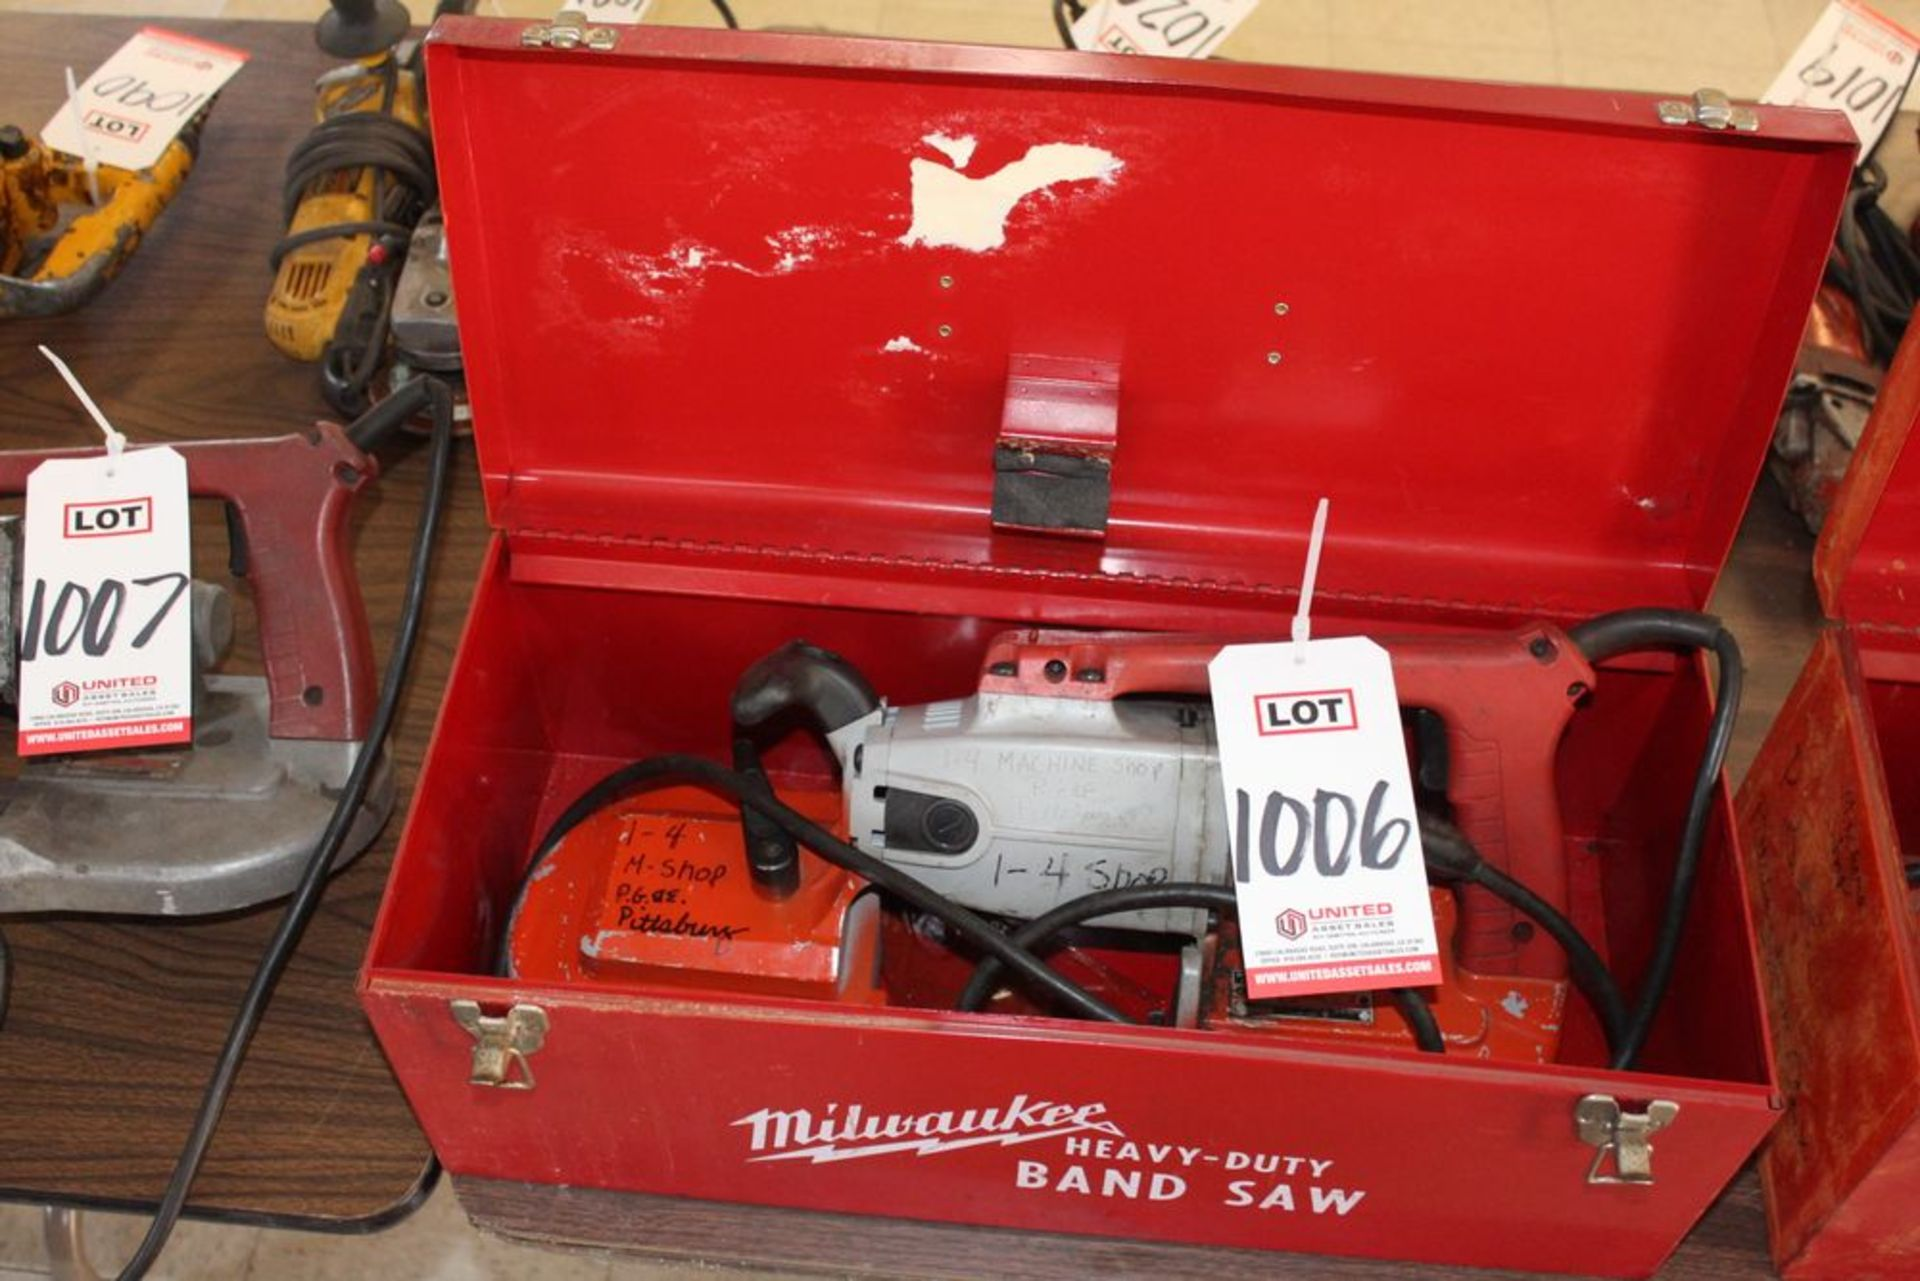 Lot 1006 - MILWAUKEE PORTABLE BAND SAW W/ CASE, (LUNCHROOM)